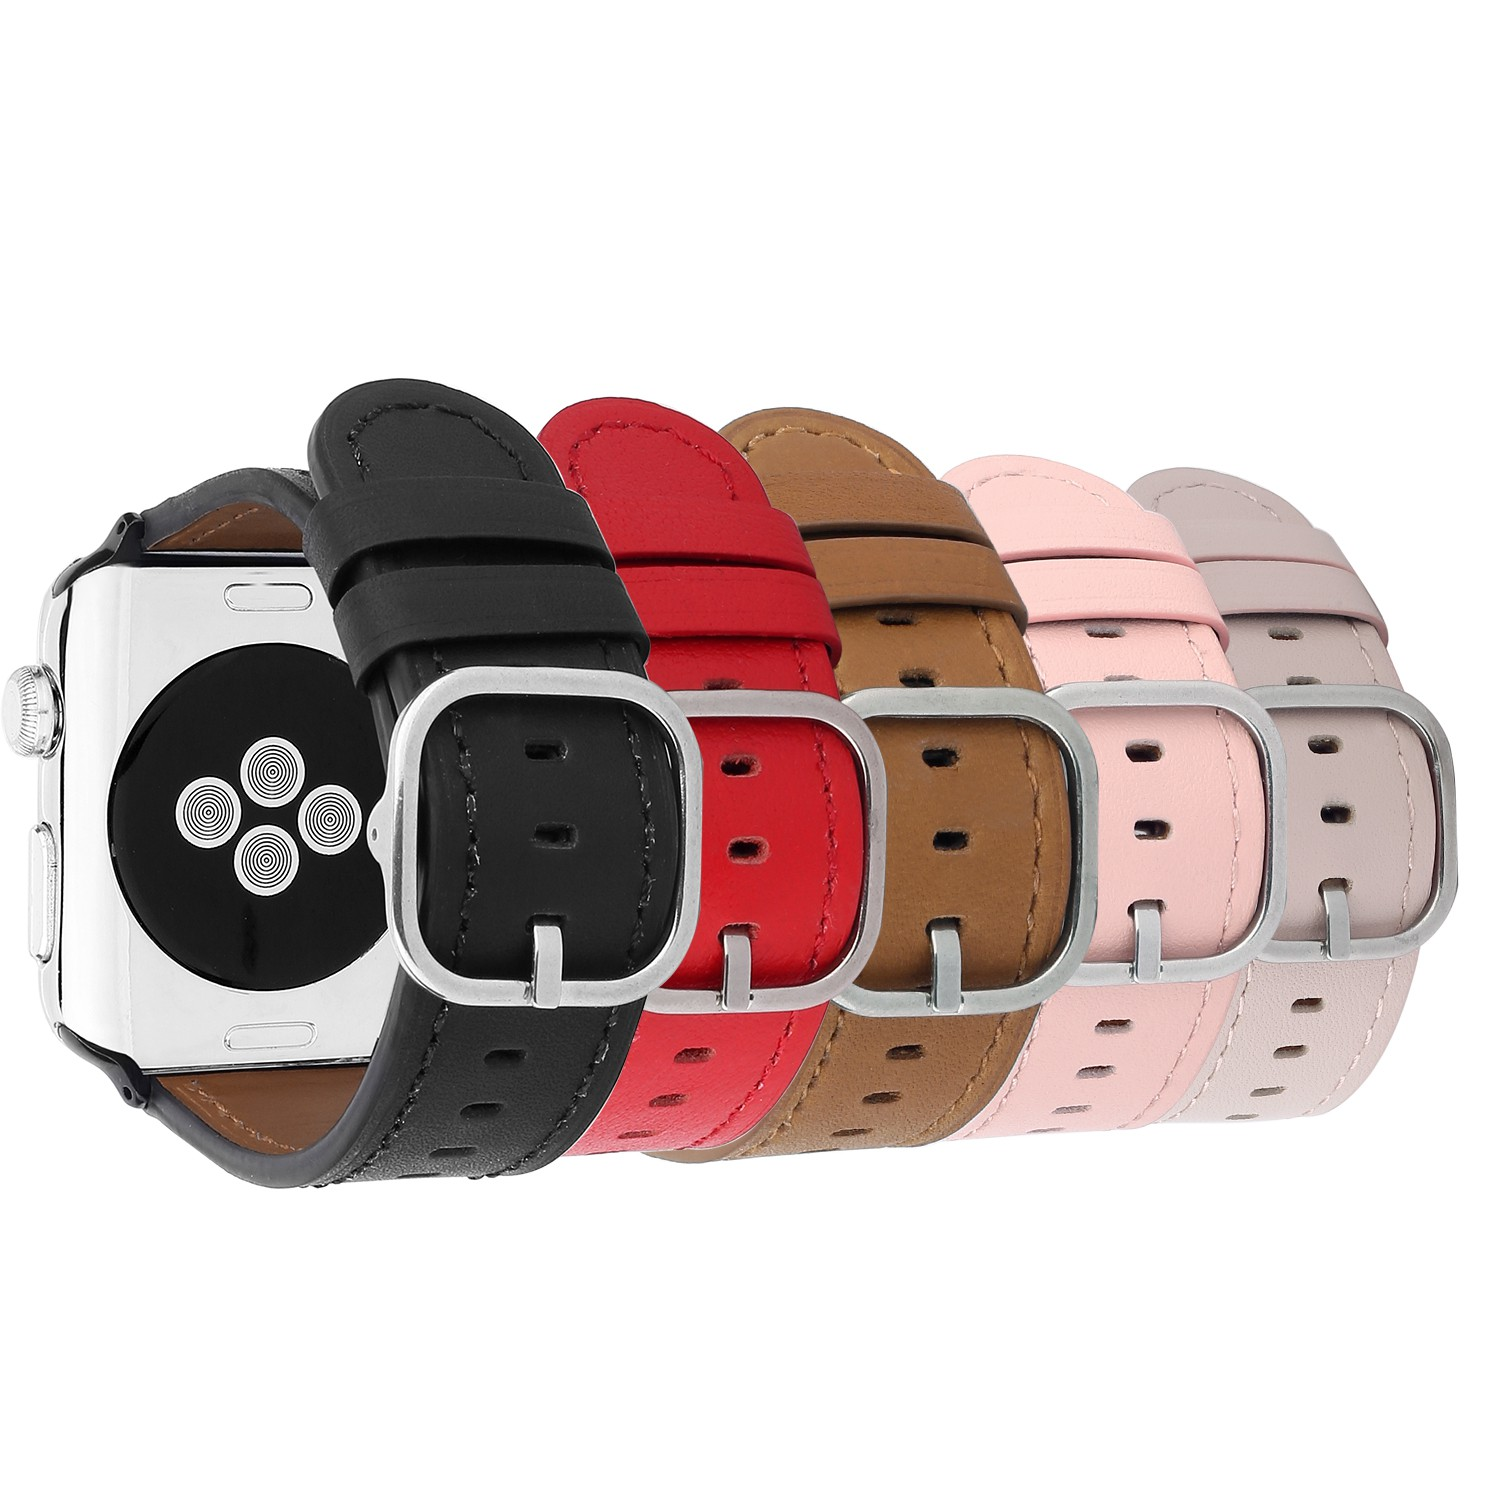 Genuine Leather Wrist Strap for Apple Watch Series 1 2 3 Band Classic Metal Buckle Wristband Belt for iWatch 42mm 38mm Bracelet genuine leather watch strap with lugs adapters for apple watch 42mm series 1 series 2 us flag